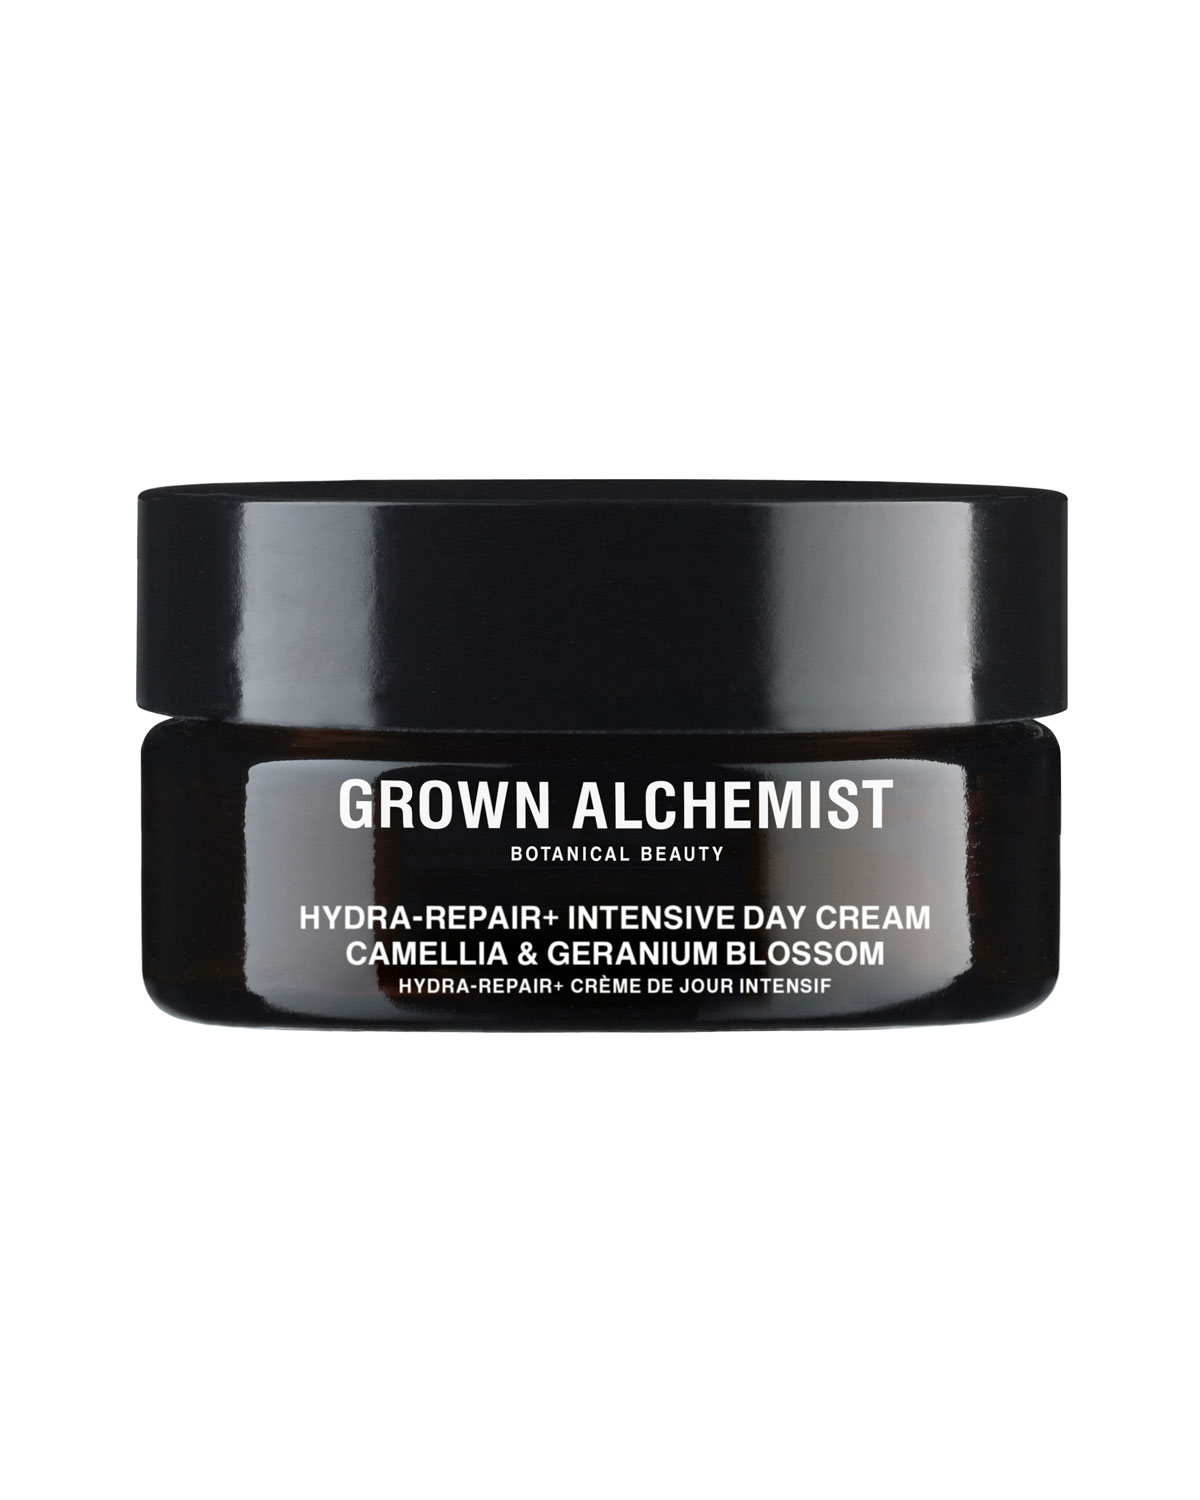 GROWN ALCHEMIST Hydra-Repair Day Cream - Camellia & Geranium Blossom, 2.2 Oz./ 65 Ml